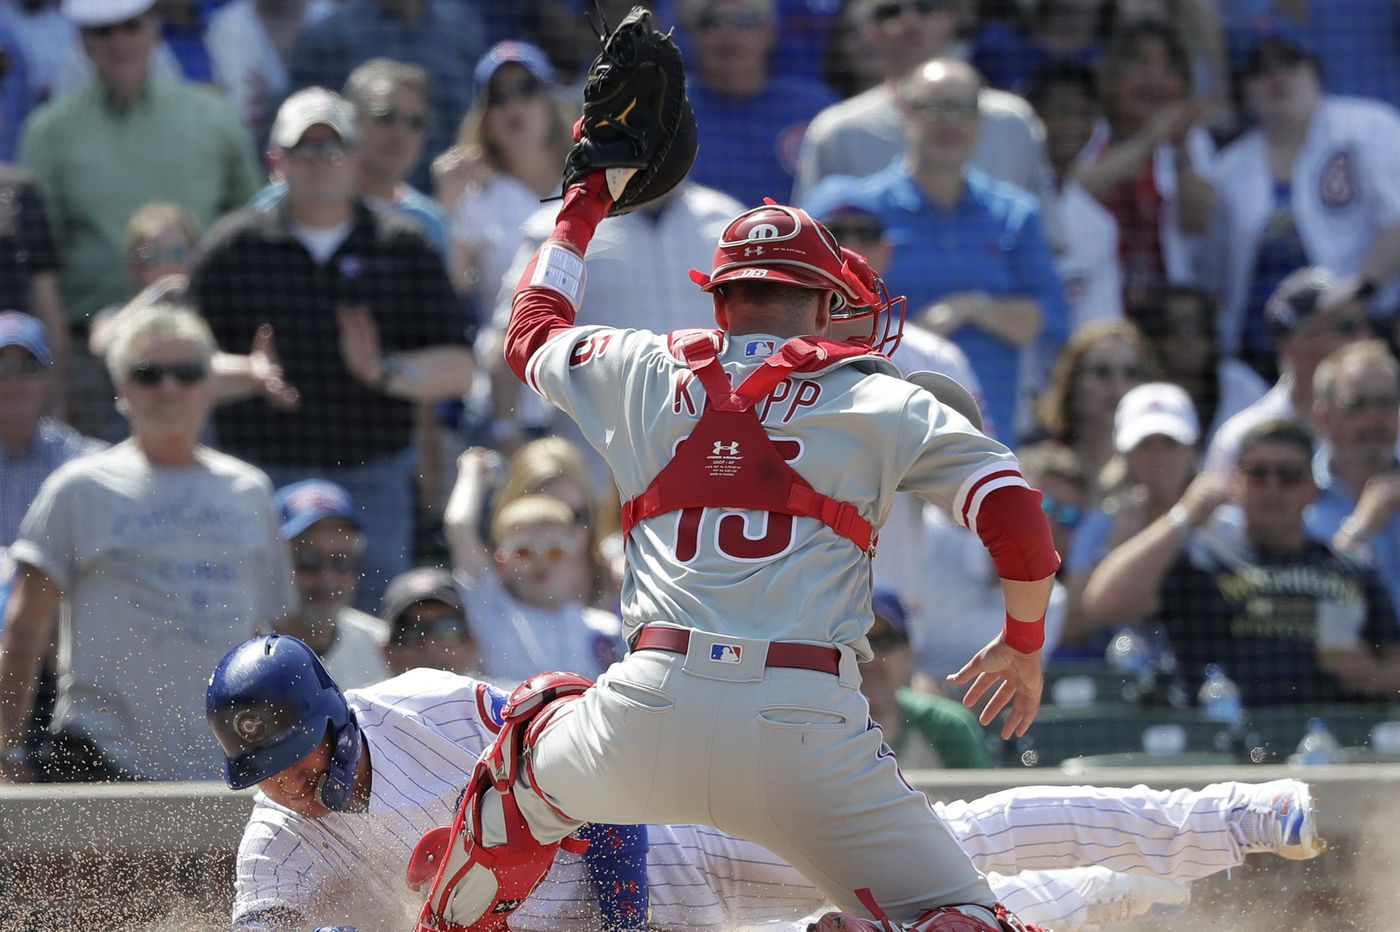 Phillies doomed by overturned call at the plate, lose to Cubs in finale of tough road trip